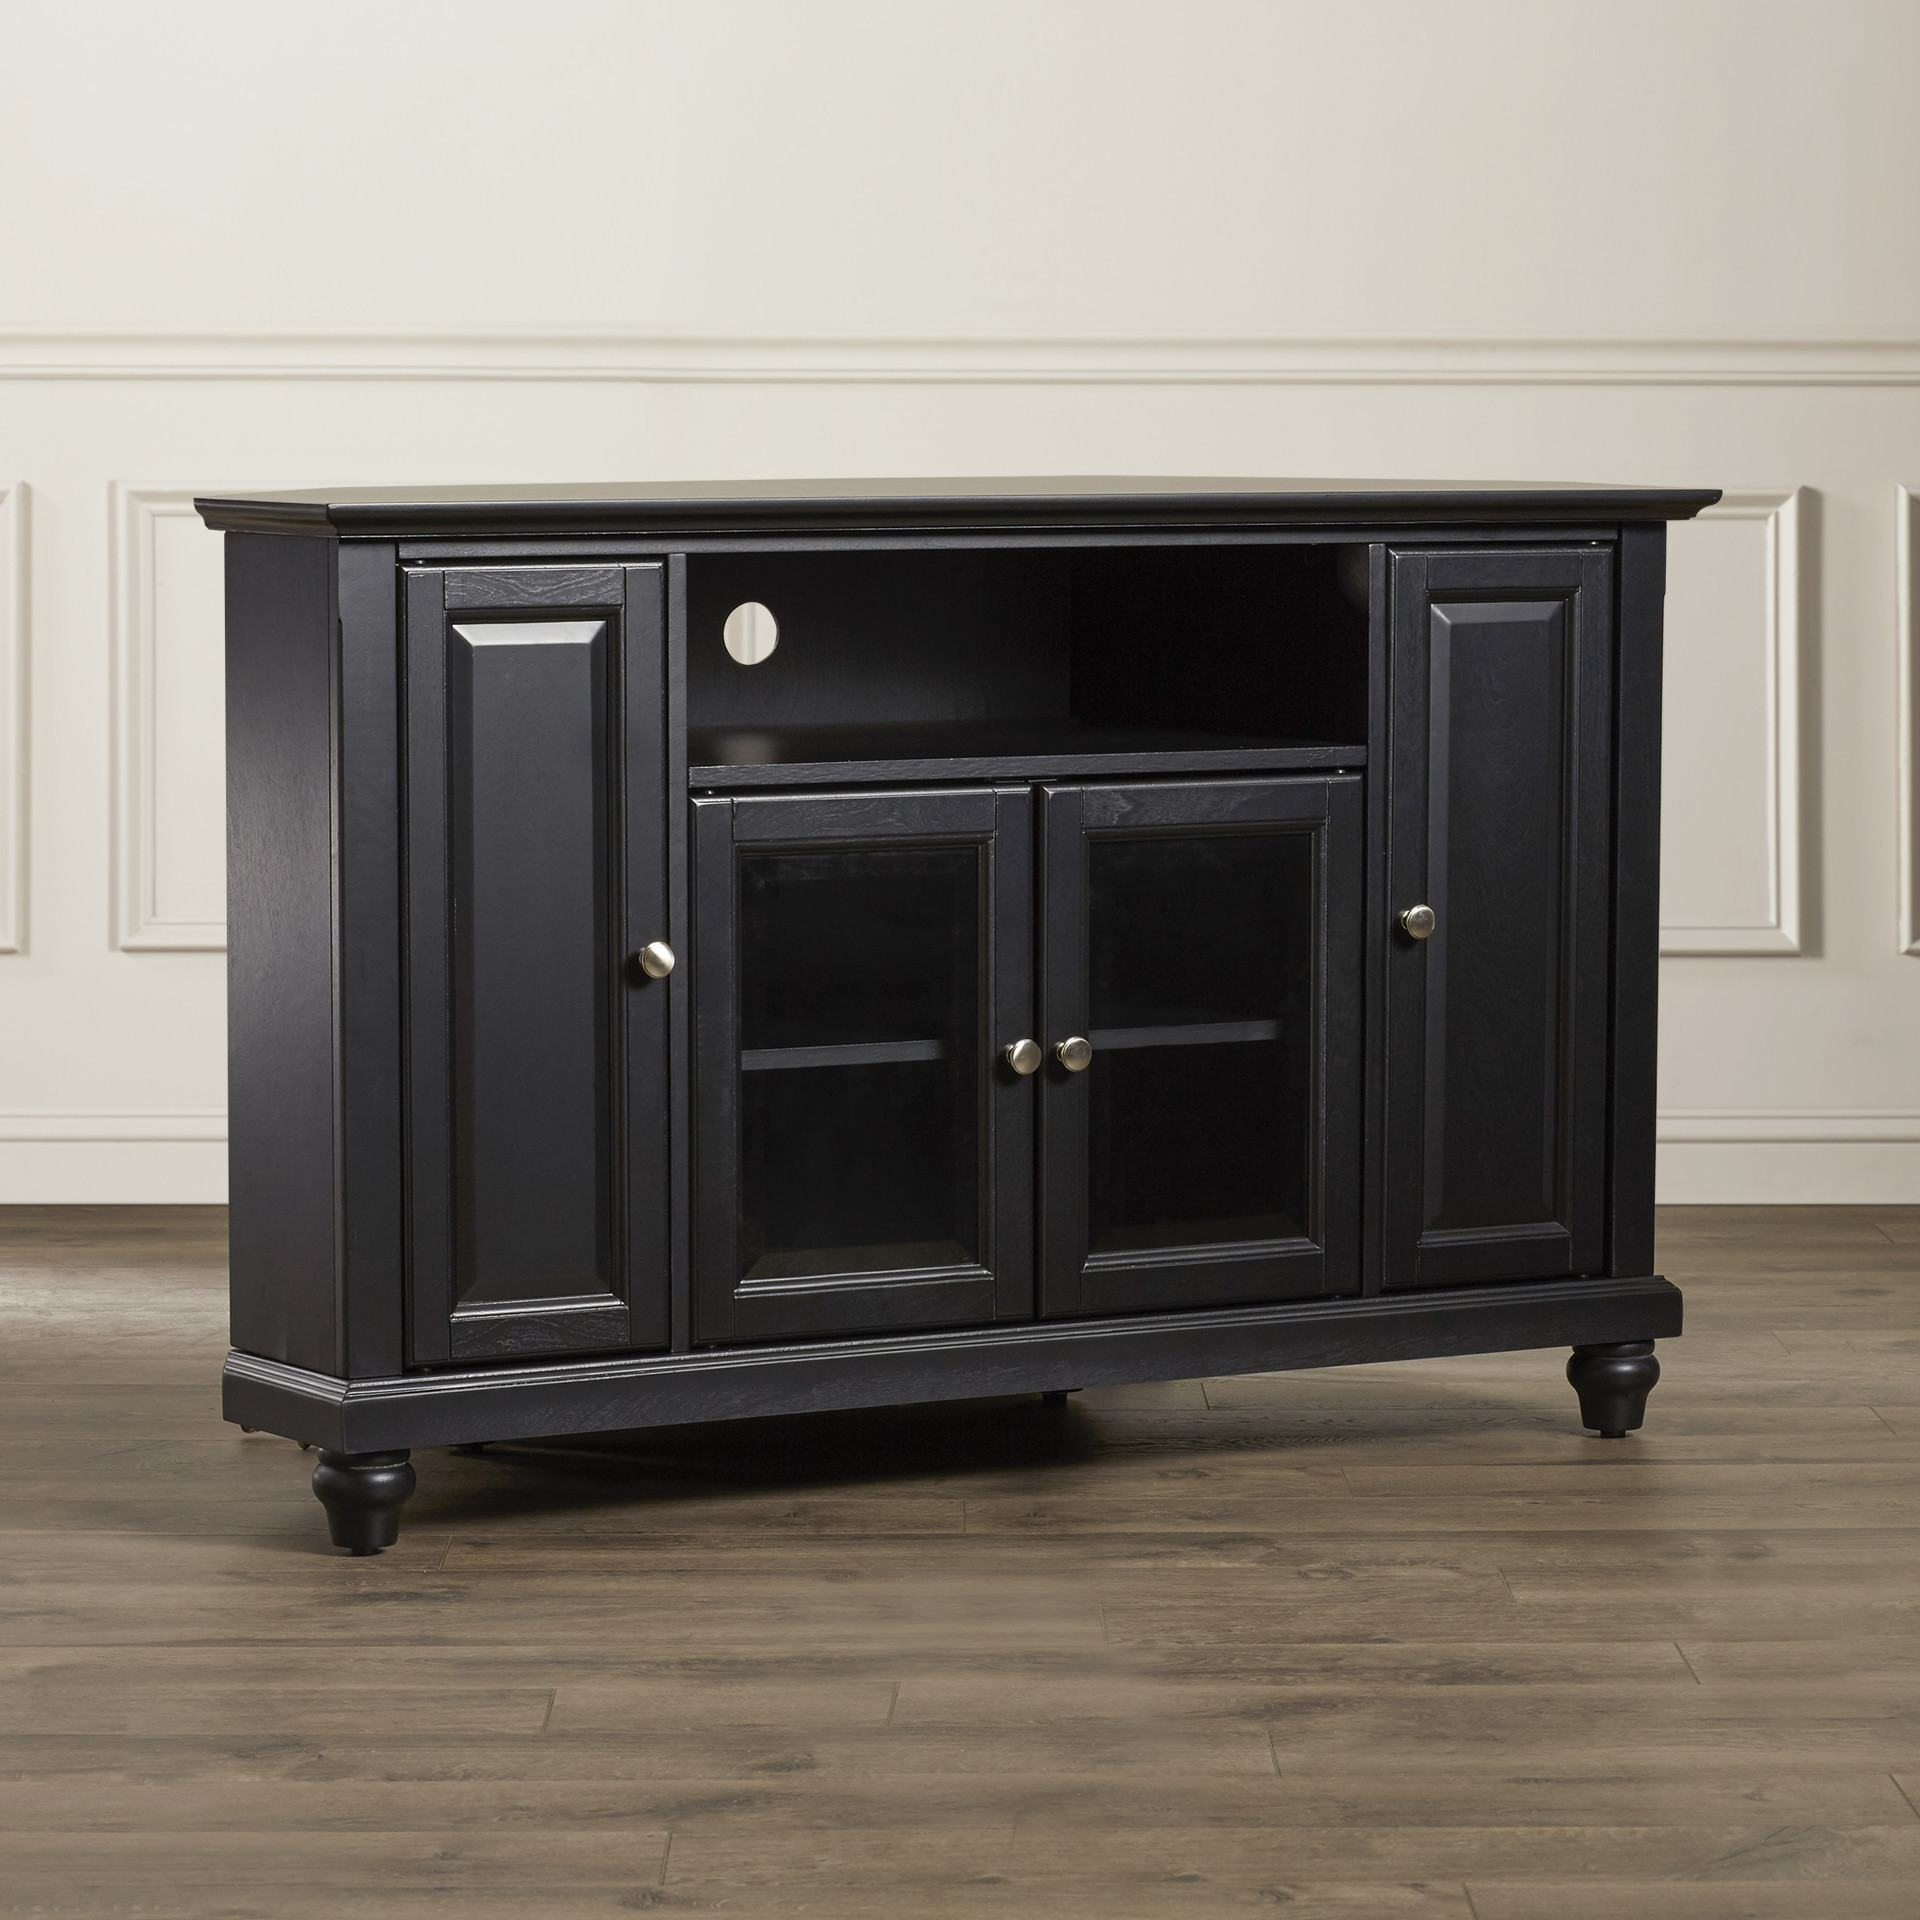 Recent 22 Lovely Wayfair Corner Tv Stand For Living Room Interior Decor With Wayfair Corner Tv Stands (View 8 of 20)